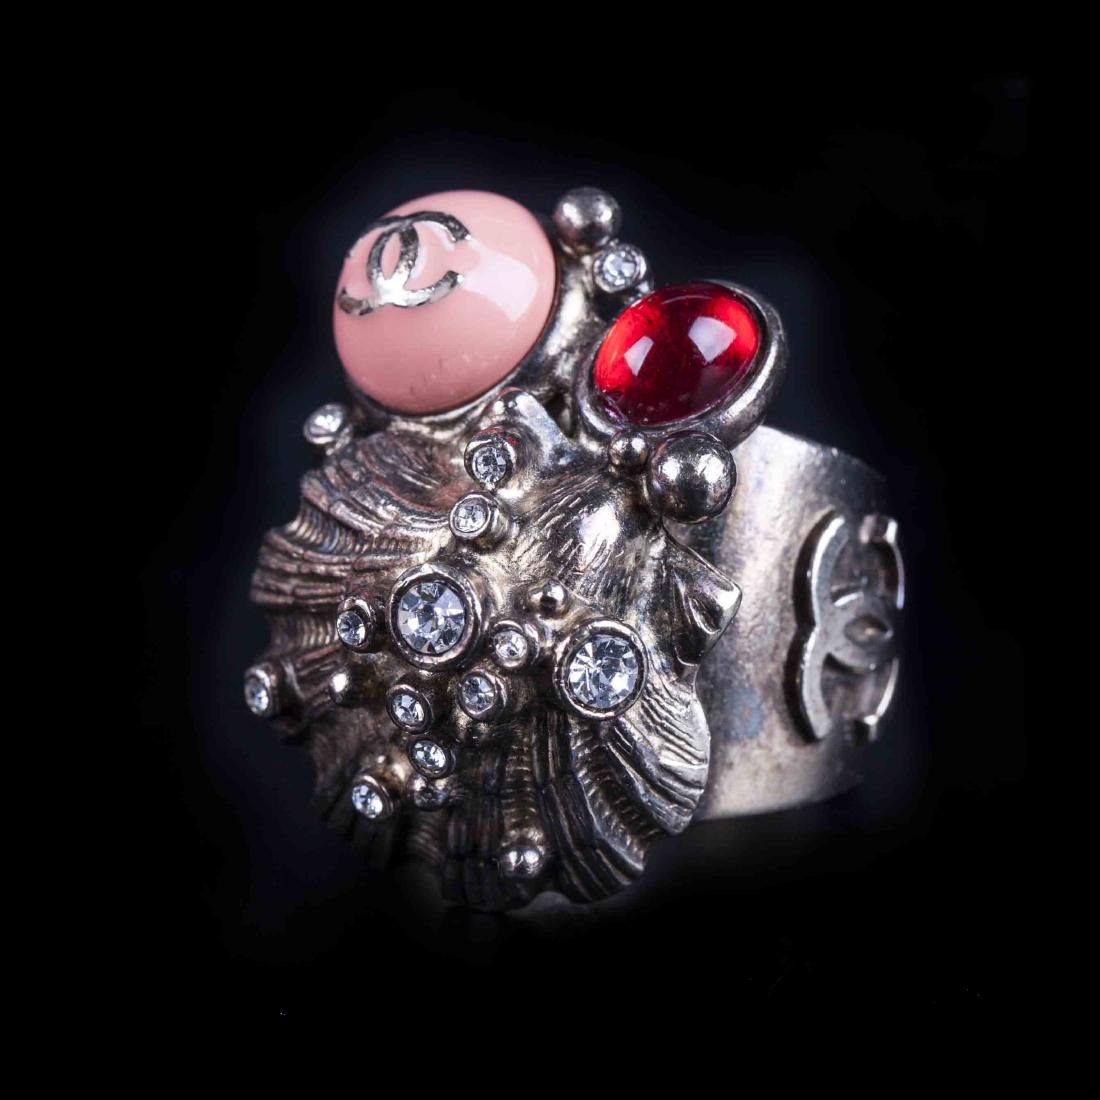 Chanel ring from the 2005 cruise collection